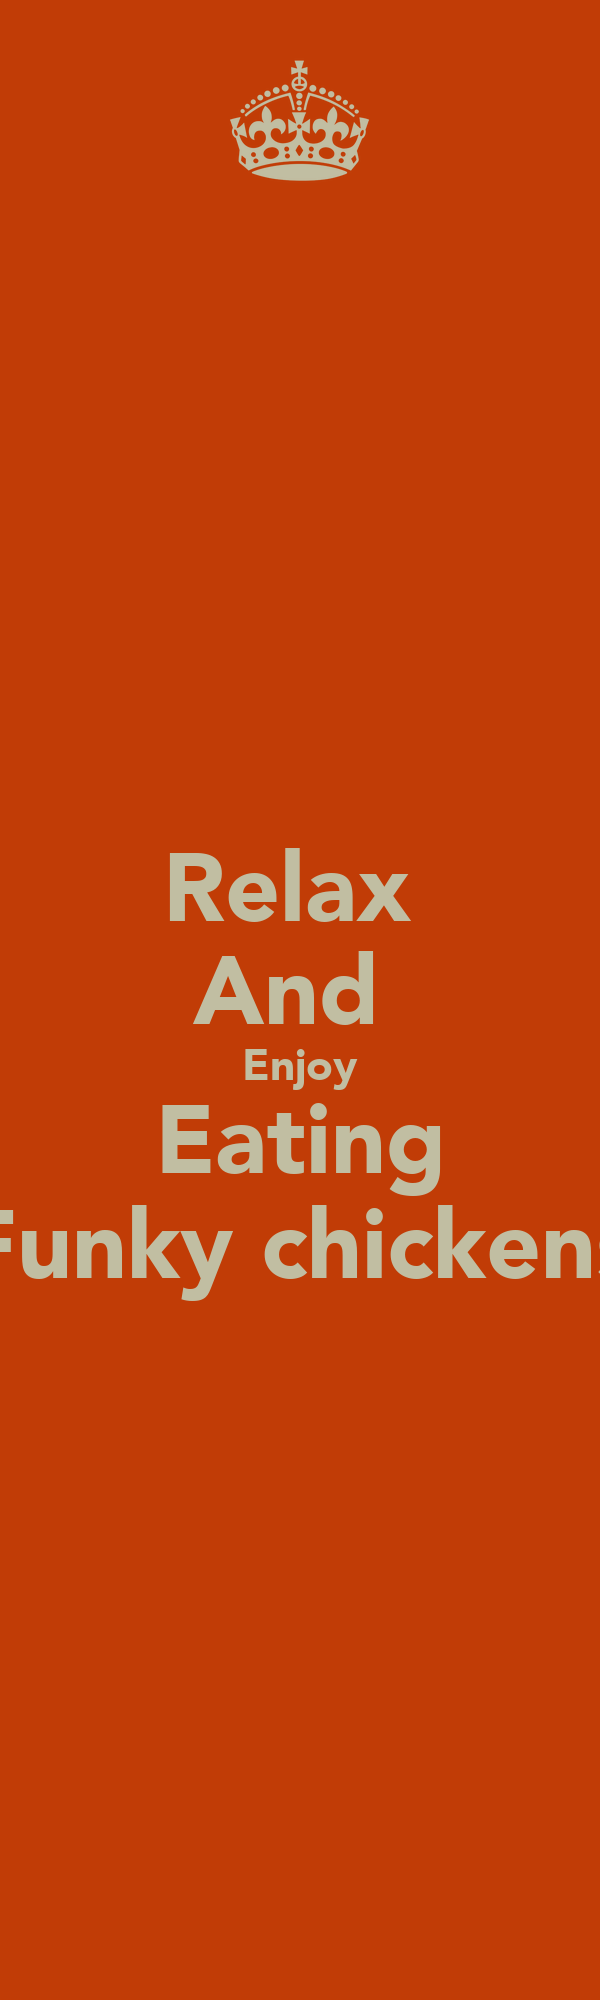 Relax  And  Enjoy Eating Funky chickens